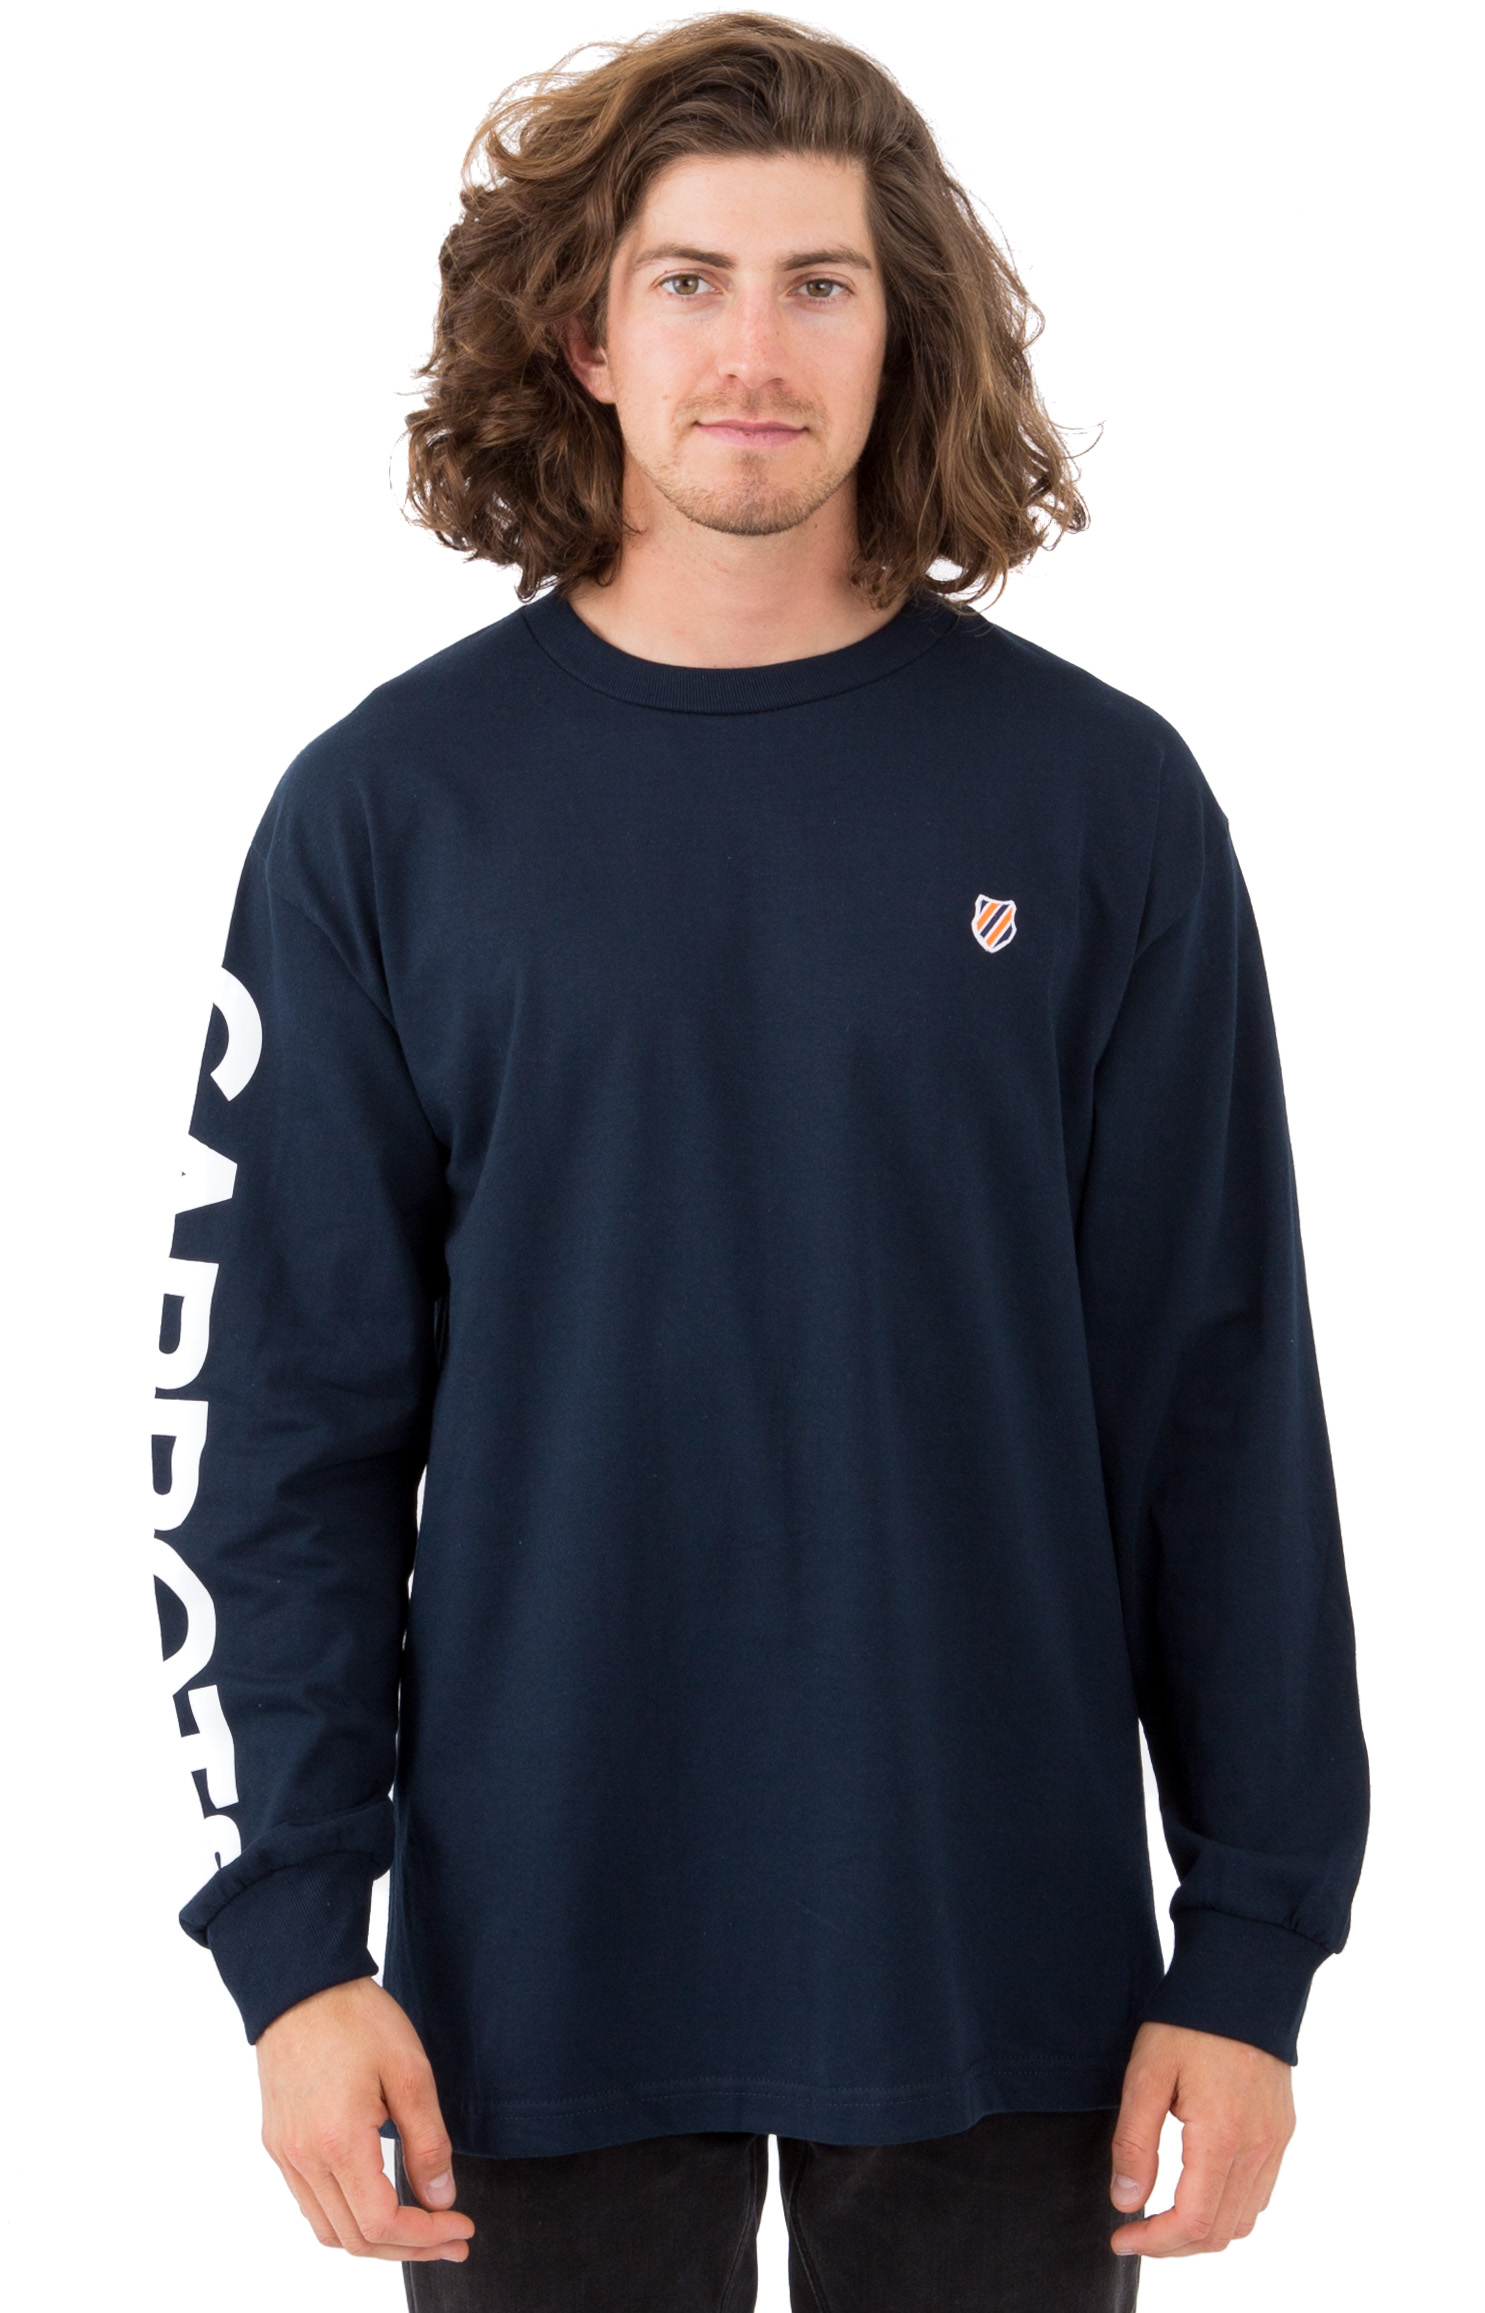 Carrots x K-Swiss, Logo L/S Shirt - Navy